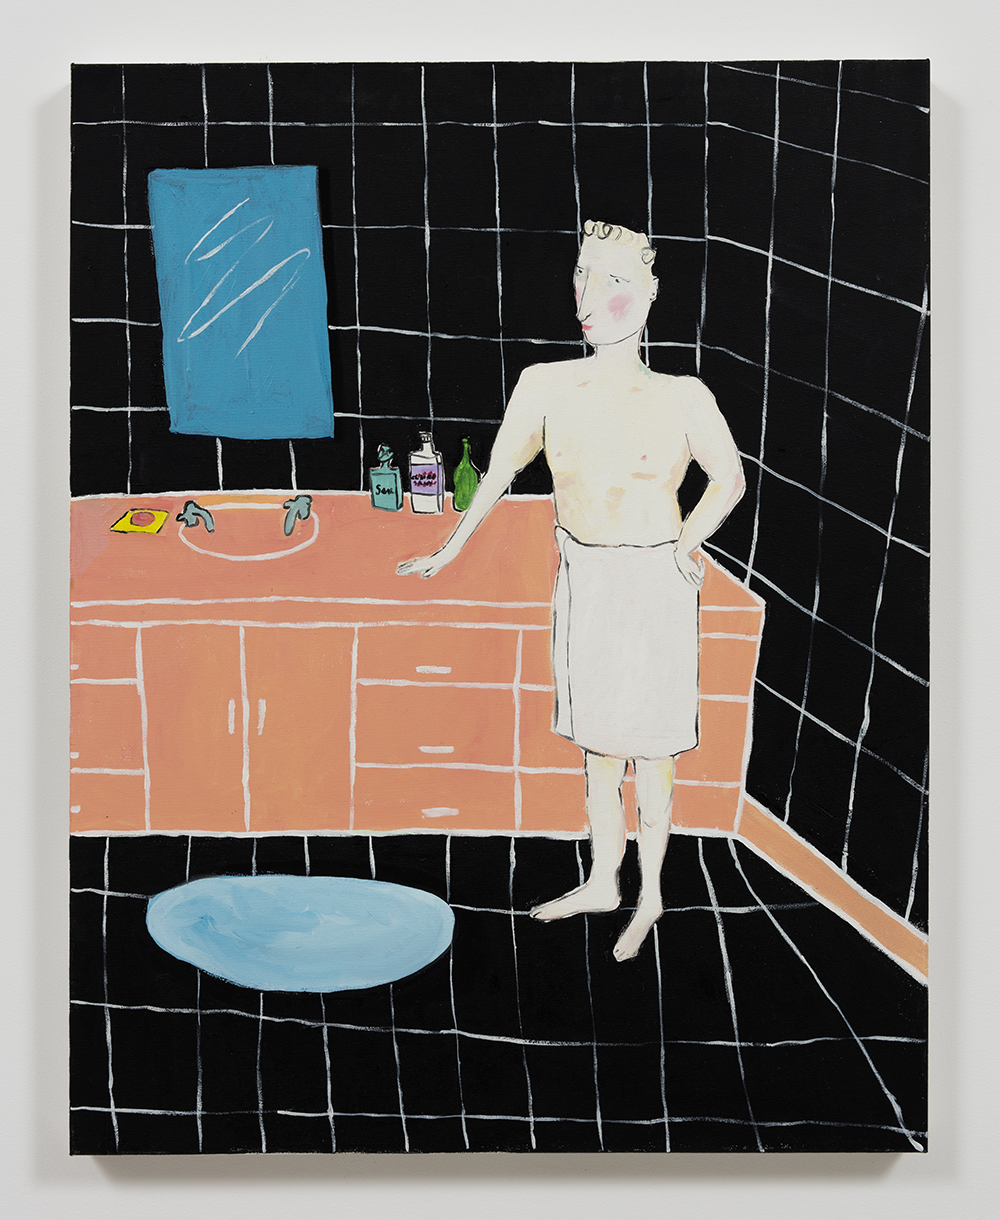 Claire Milbrath. <em>Gray's Bathroom</em>, 2016. Oil on canvas, 28 x 22 inches